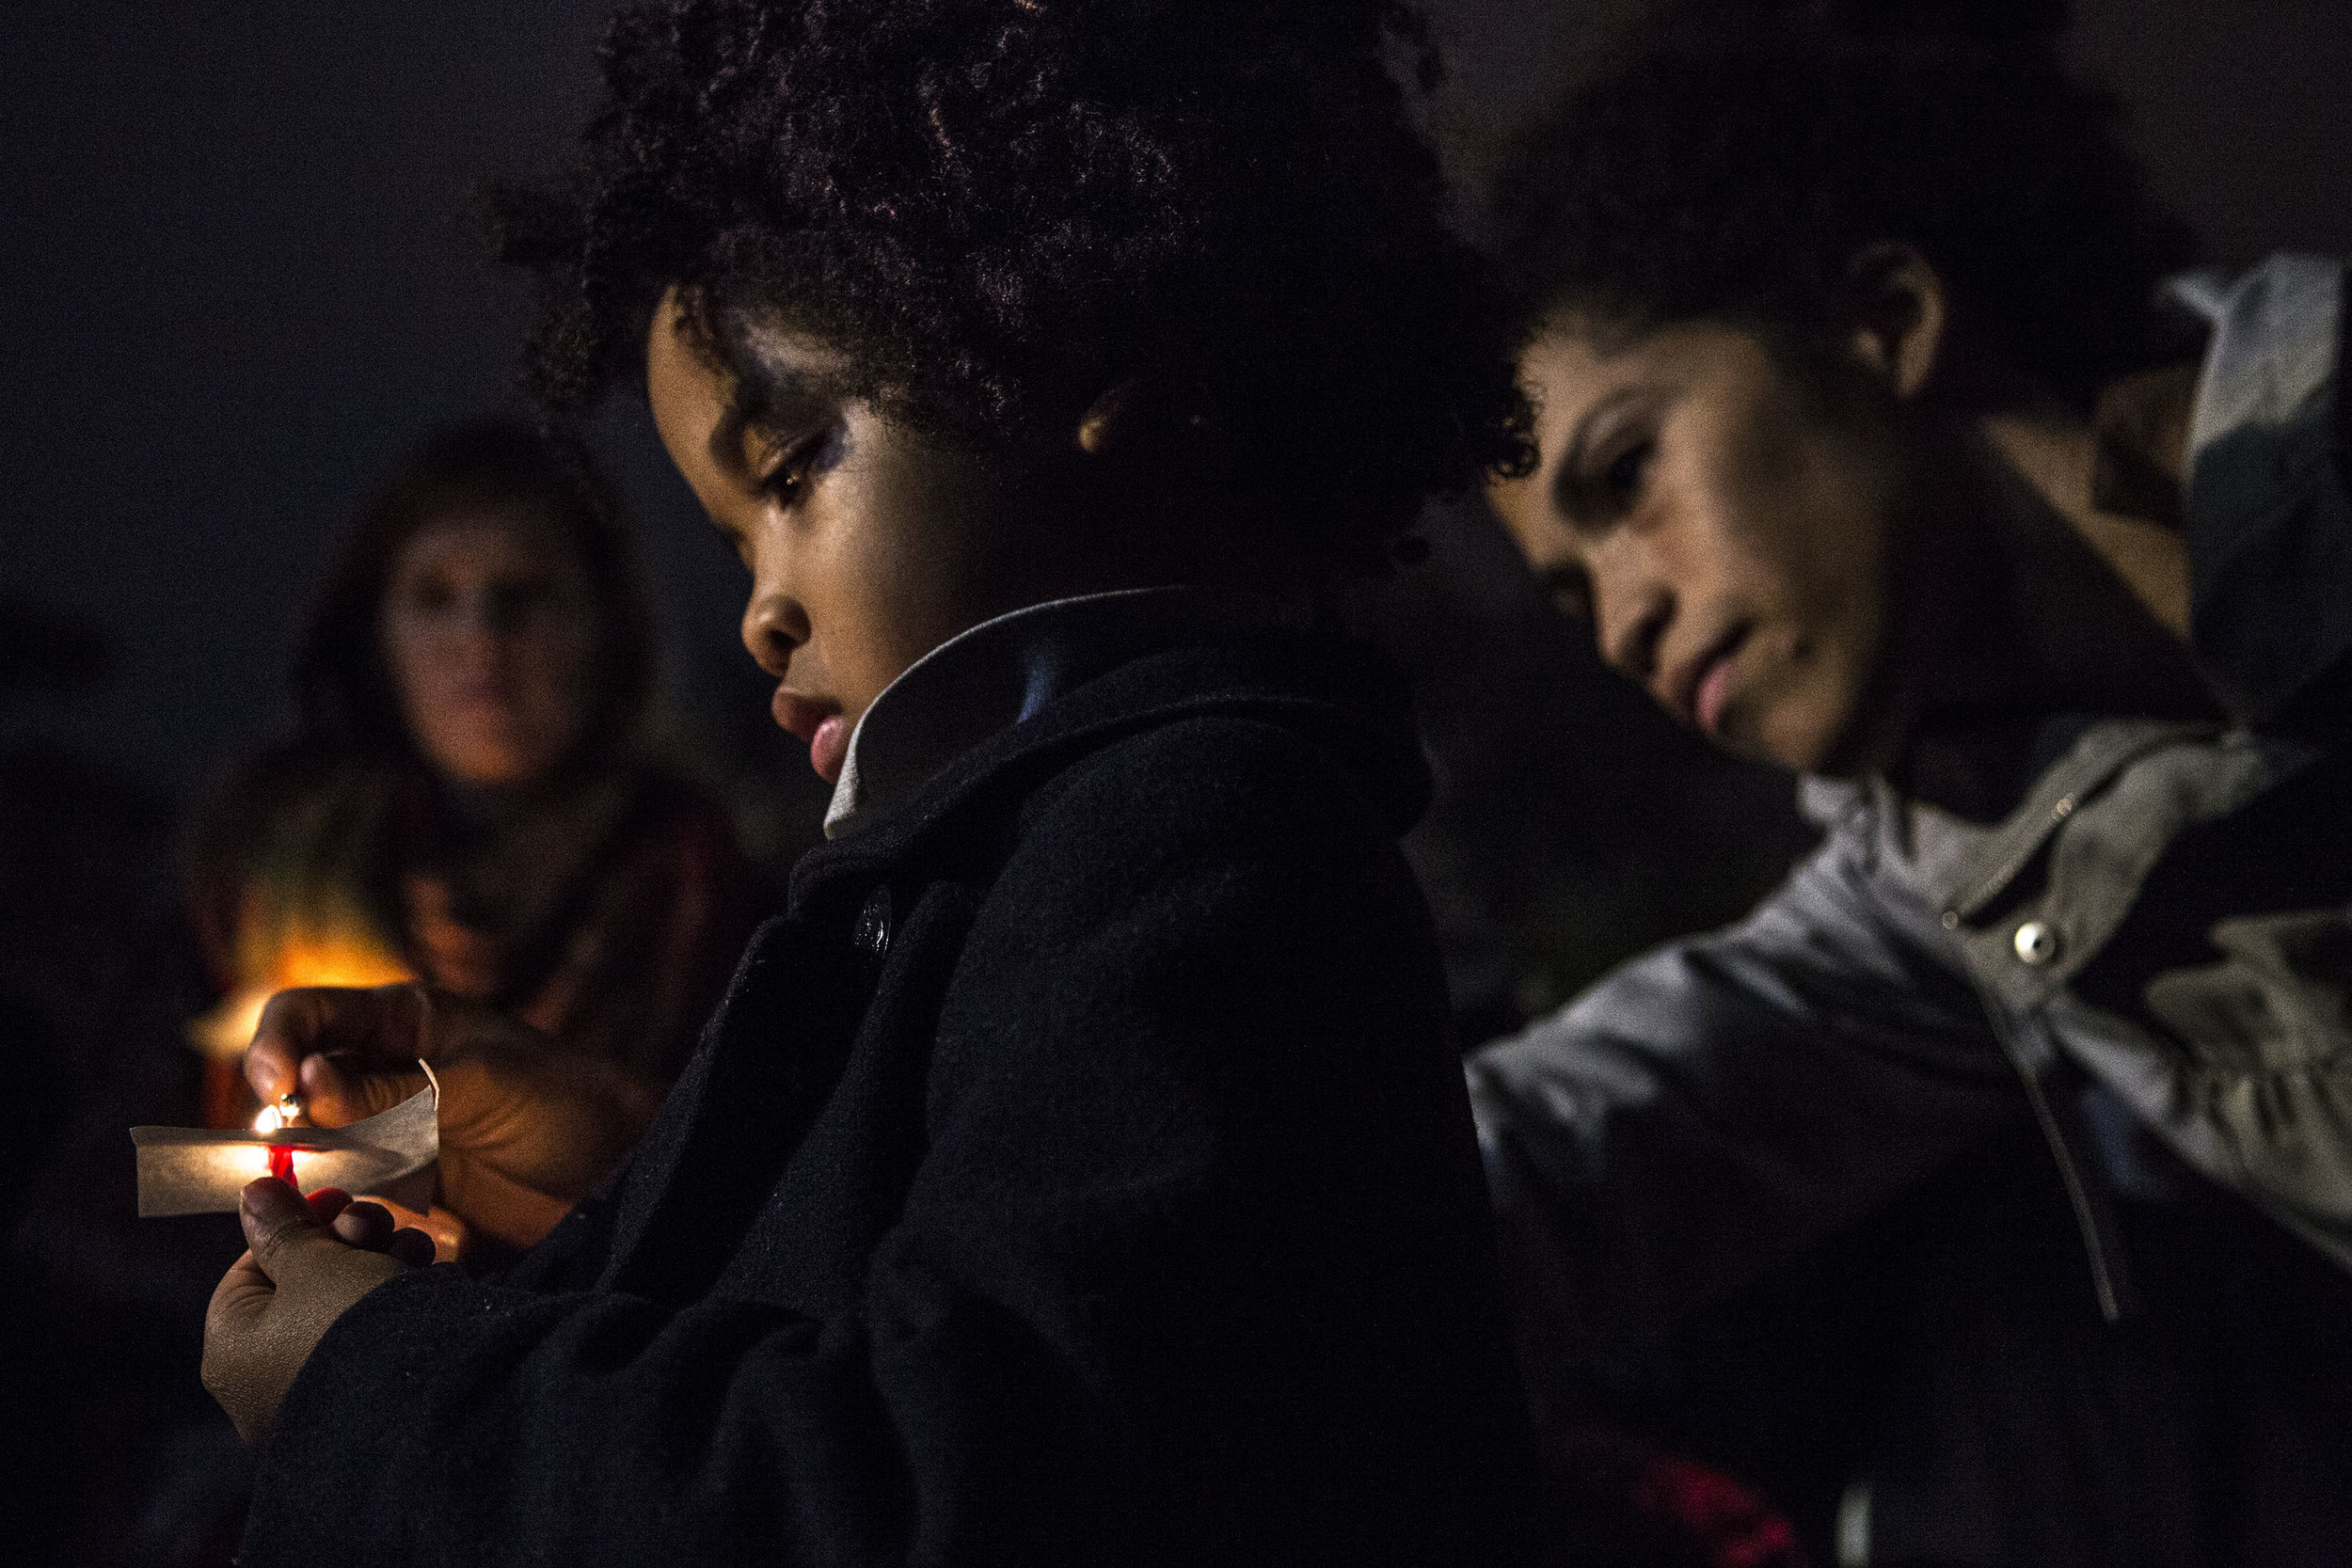 A mother lights the candle of her son during a candlelight vigil outside the White House, the evening after the 2016 presidential election.